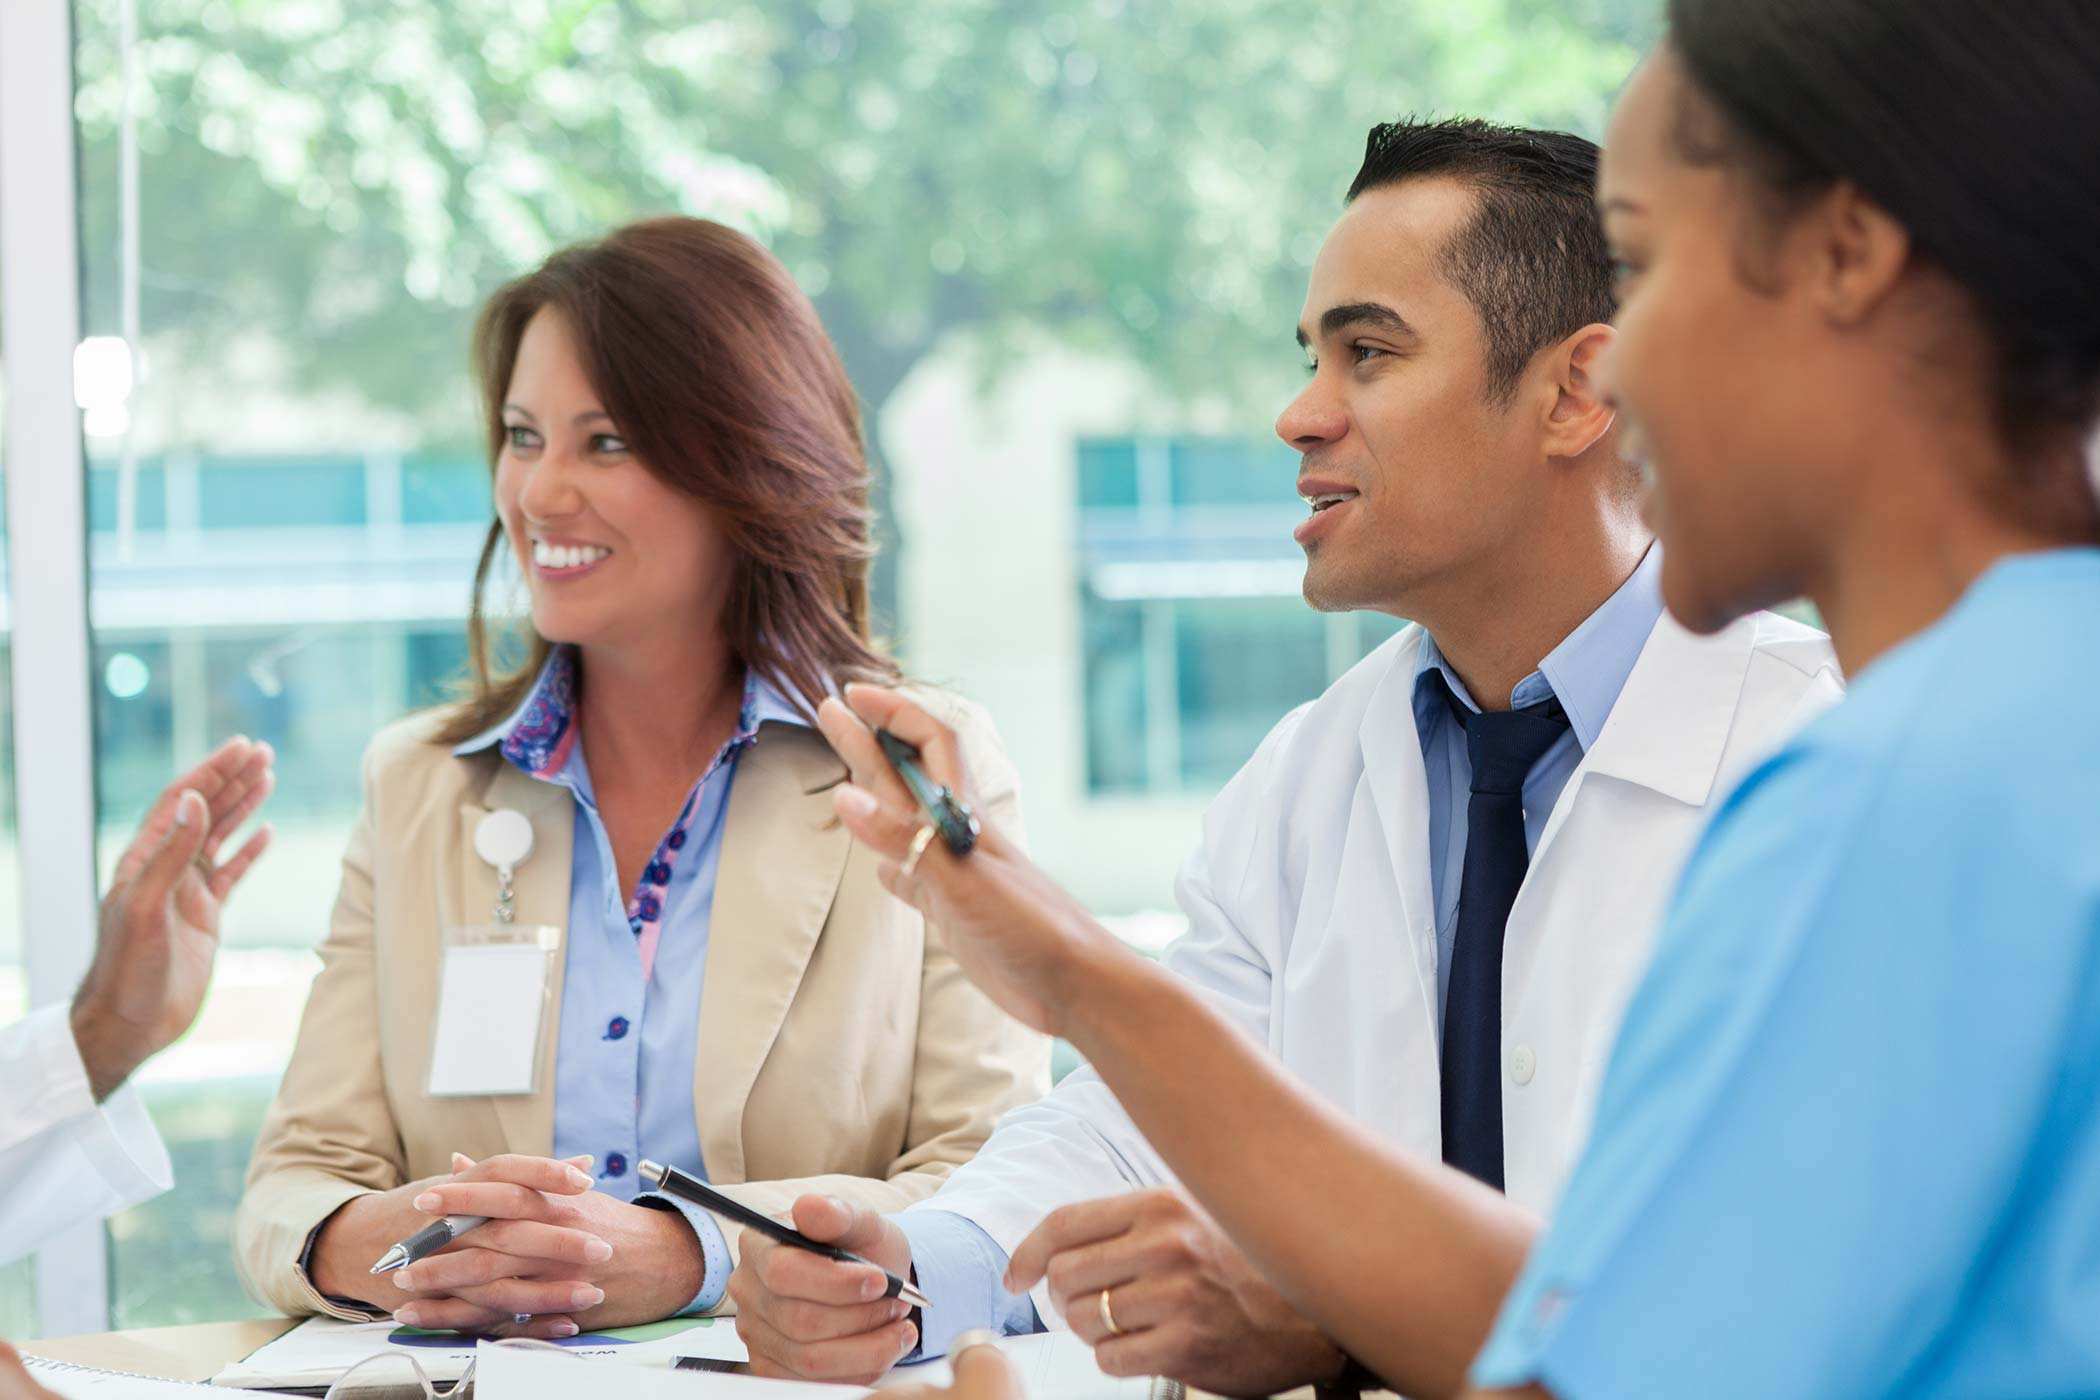 group of medical professionals having a conversation around table